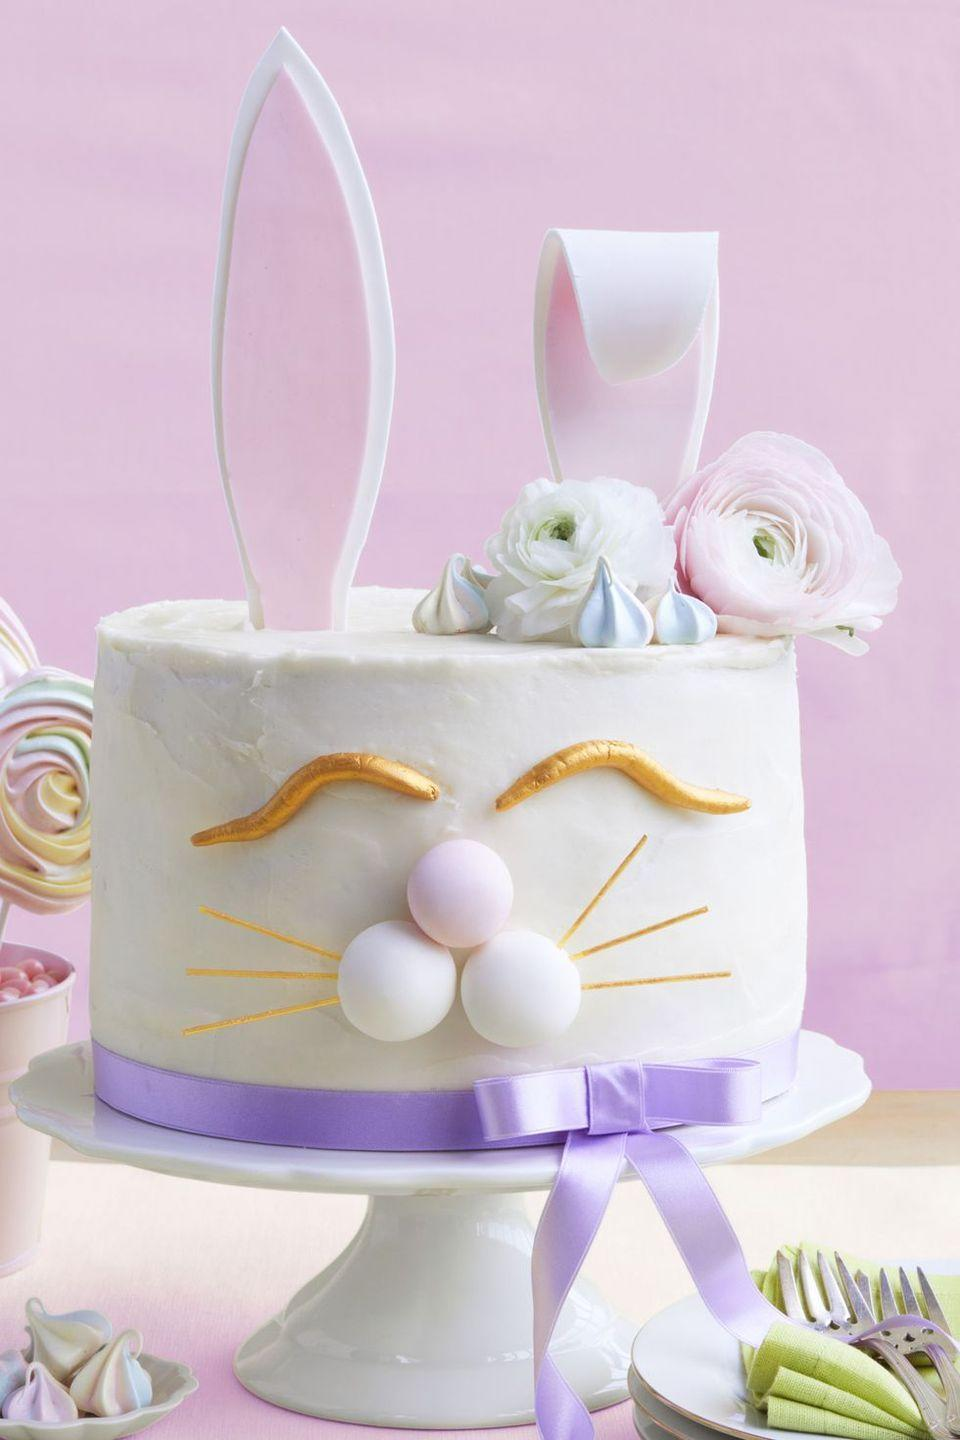 "<p>The Easter bunny has moved on to your neighbor's house, but this sugary-sweet version is here to stay (until you eat it, of course). </p><p><em><a href=""https://www.womansday.com/food-recipes/food-drinks/a19122506/carrot-bunny-cake-recipe/"" rel=""nofollow noopener"" target=""_blank"" data-ylk=""slk:Get the recipe from Woman's Day »"" class=""link rapid-noclick-resp"">Get the recipe from Woman's Day »</a></em> </p>"